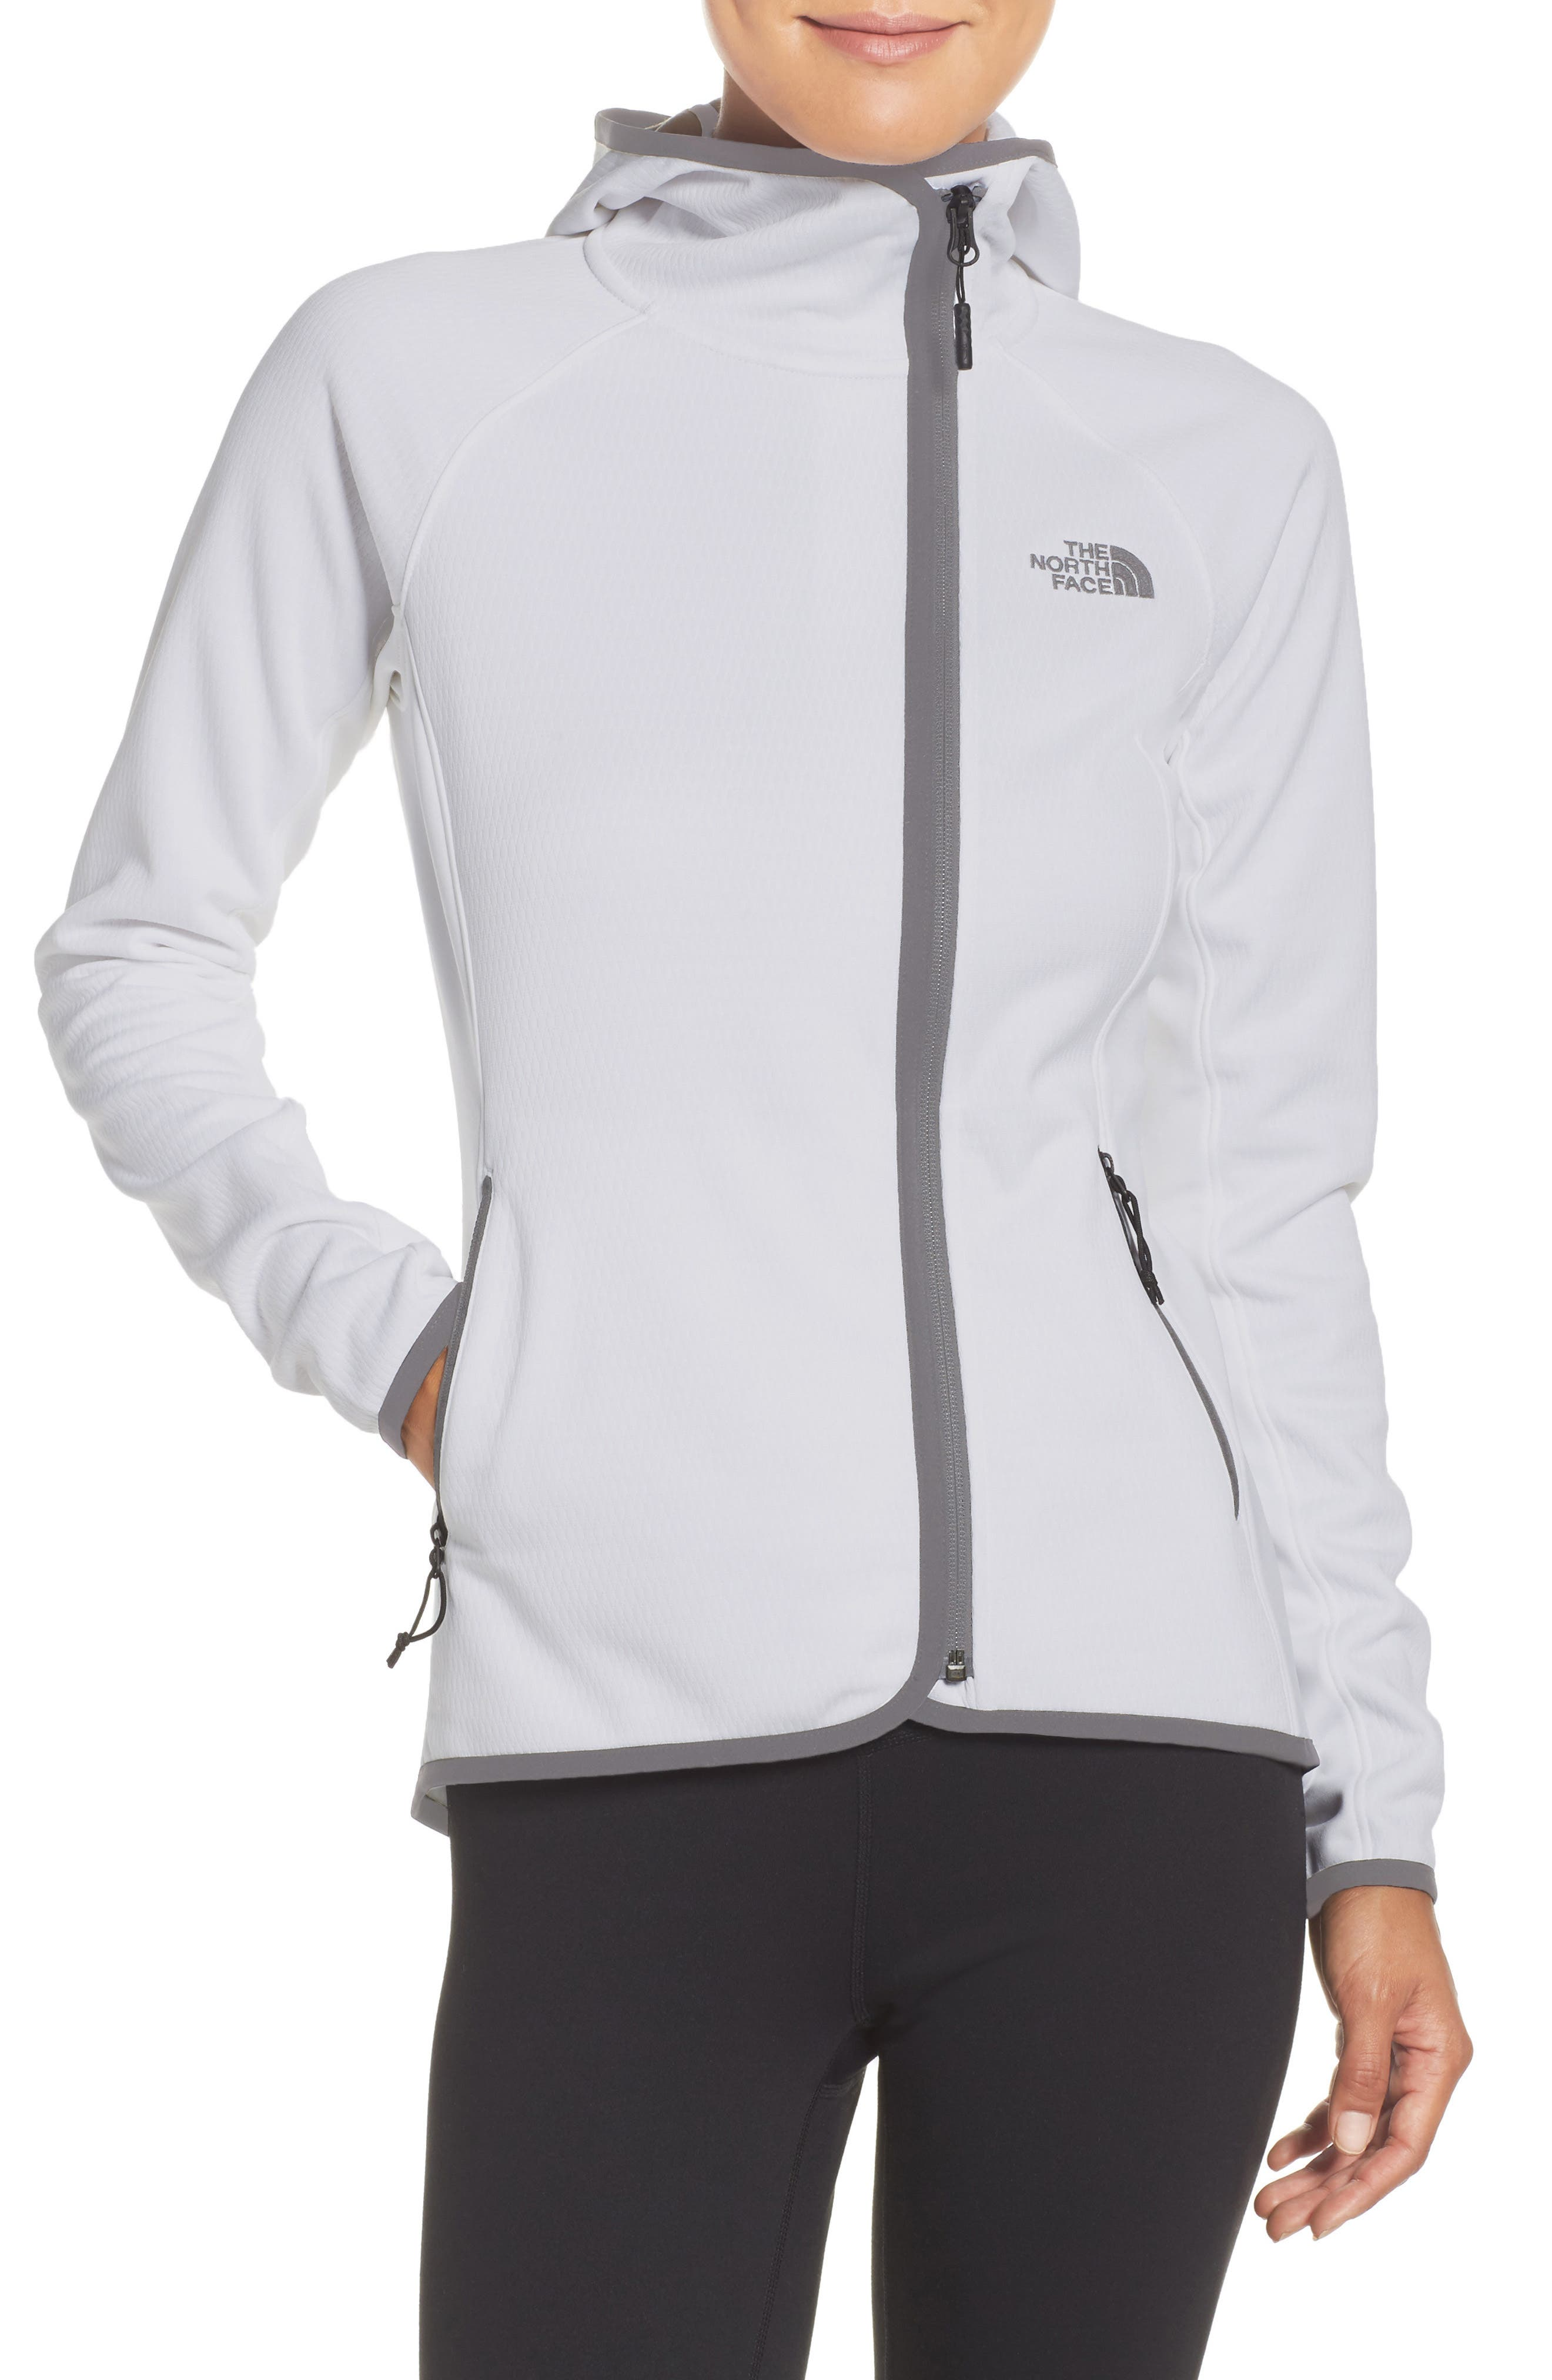 Alternate Image 1 Selected - The North Face 'Arcata' Water Resistant Jacket